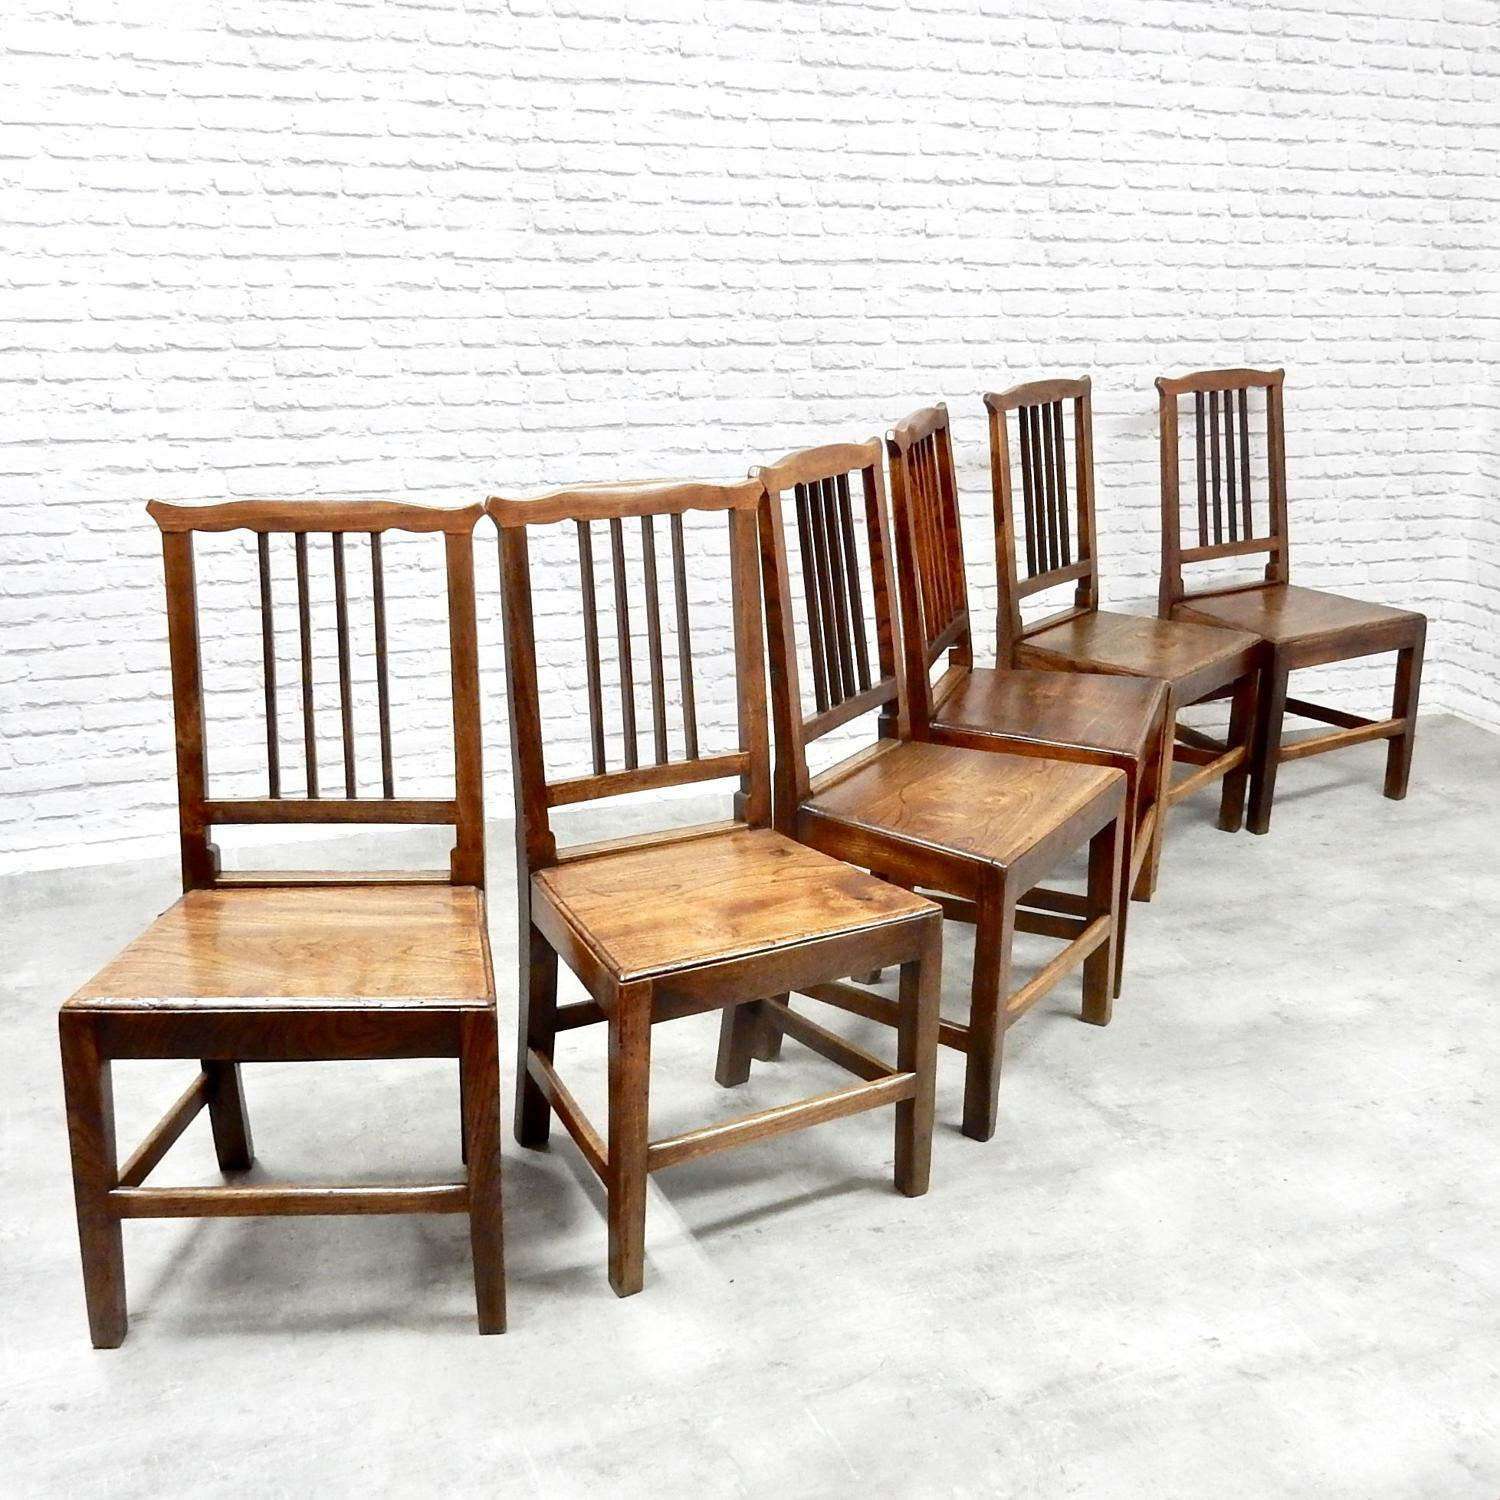 C19th Dining Chairs in Elm